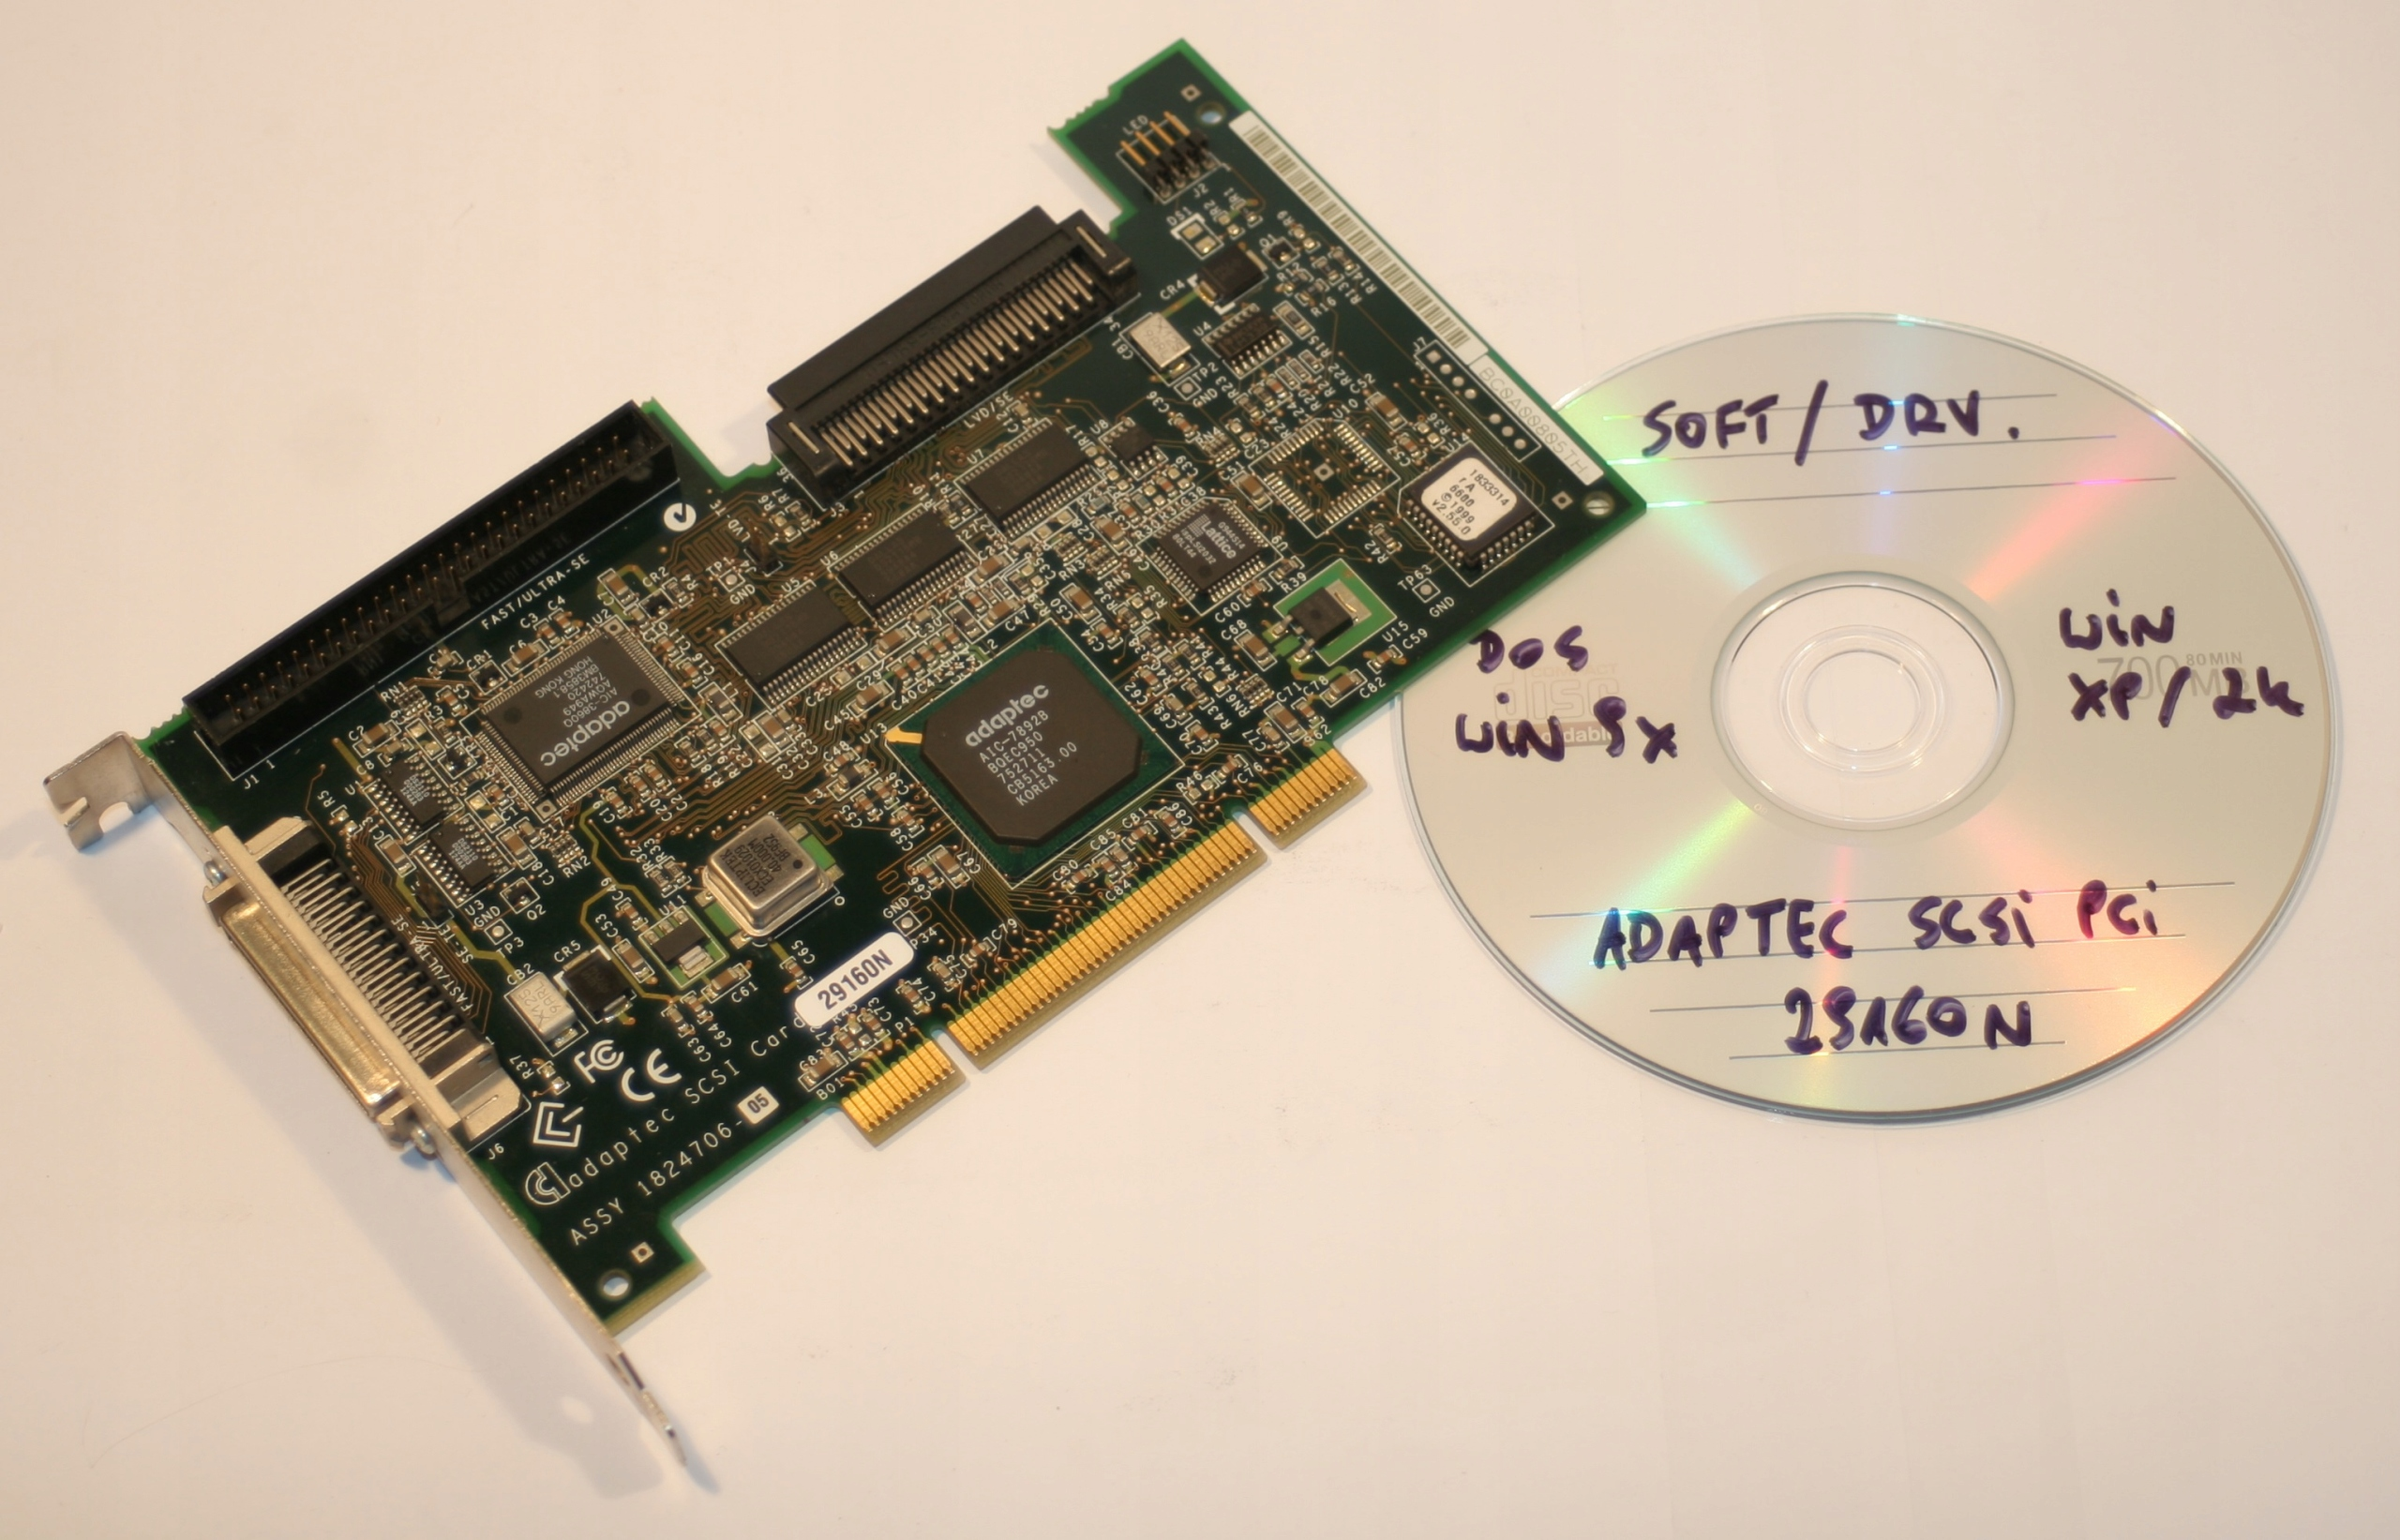 Driver for 29160N Ultra160 PCI SCSI Controller